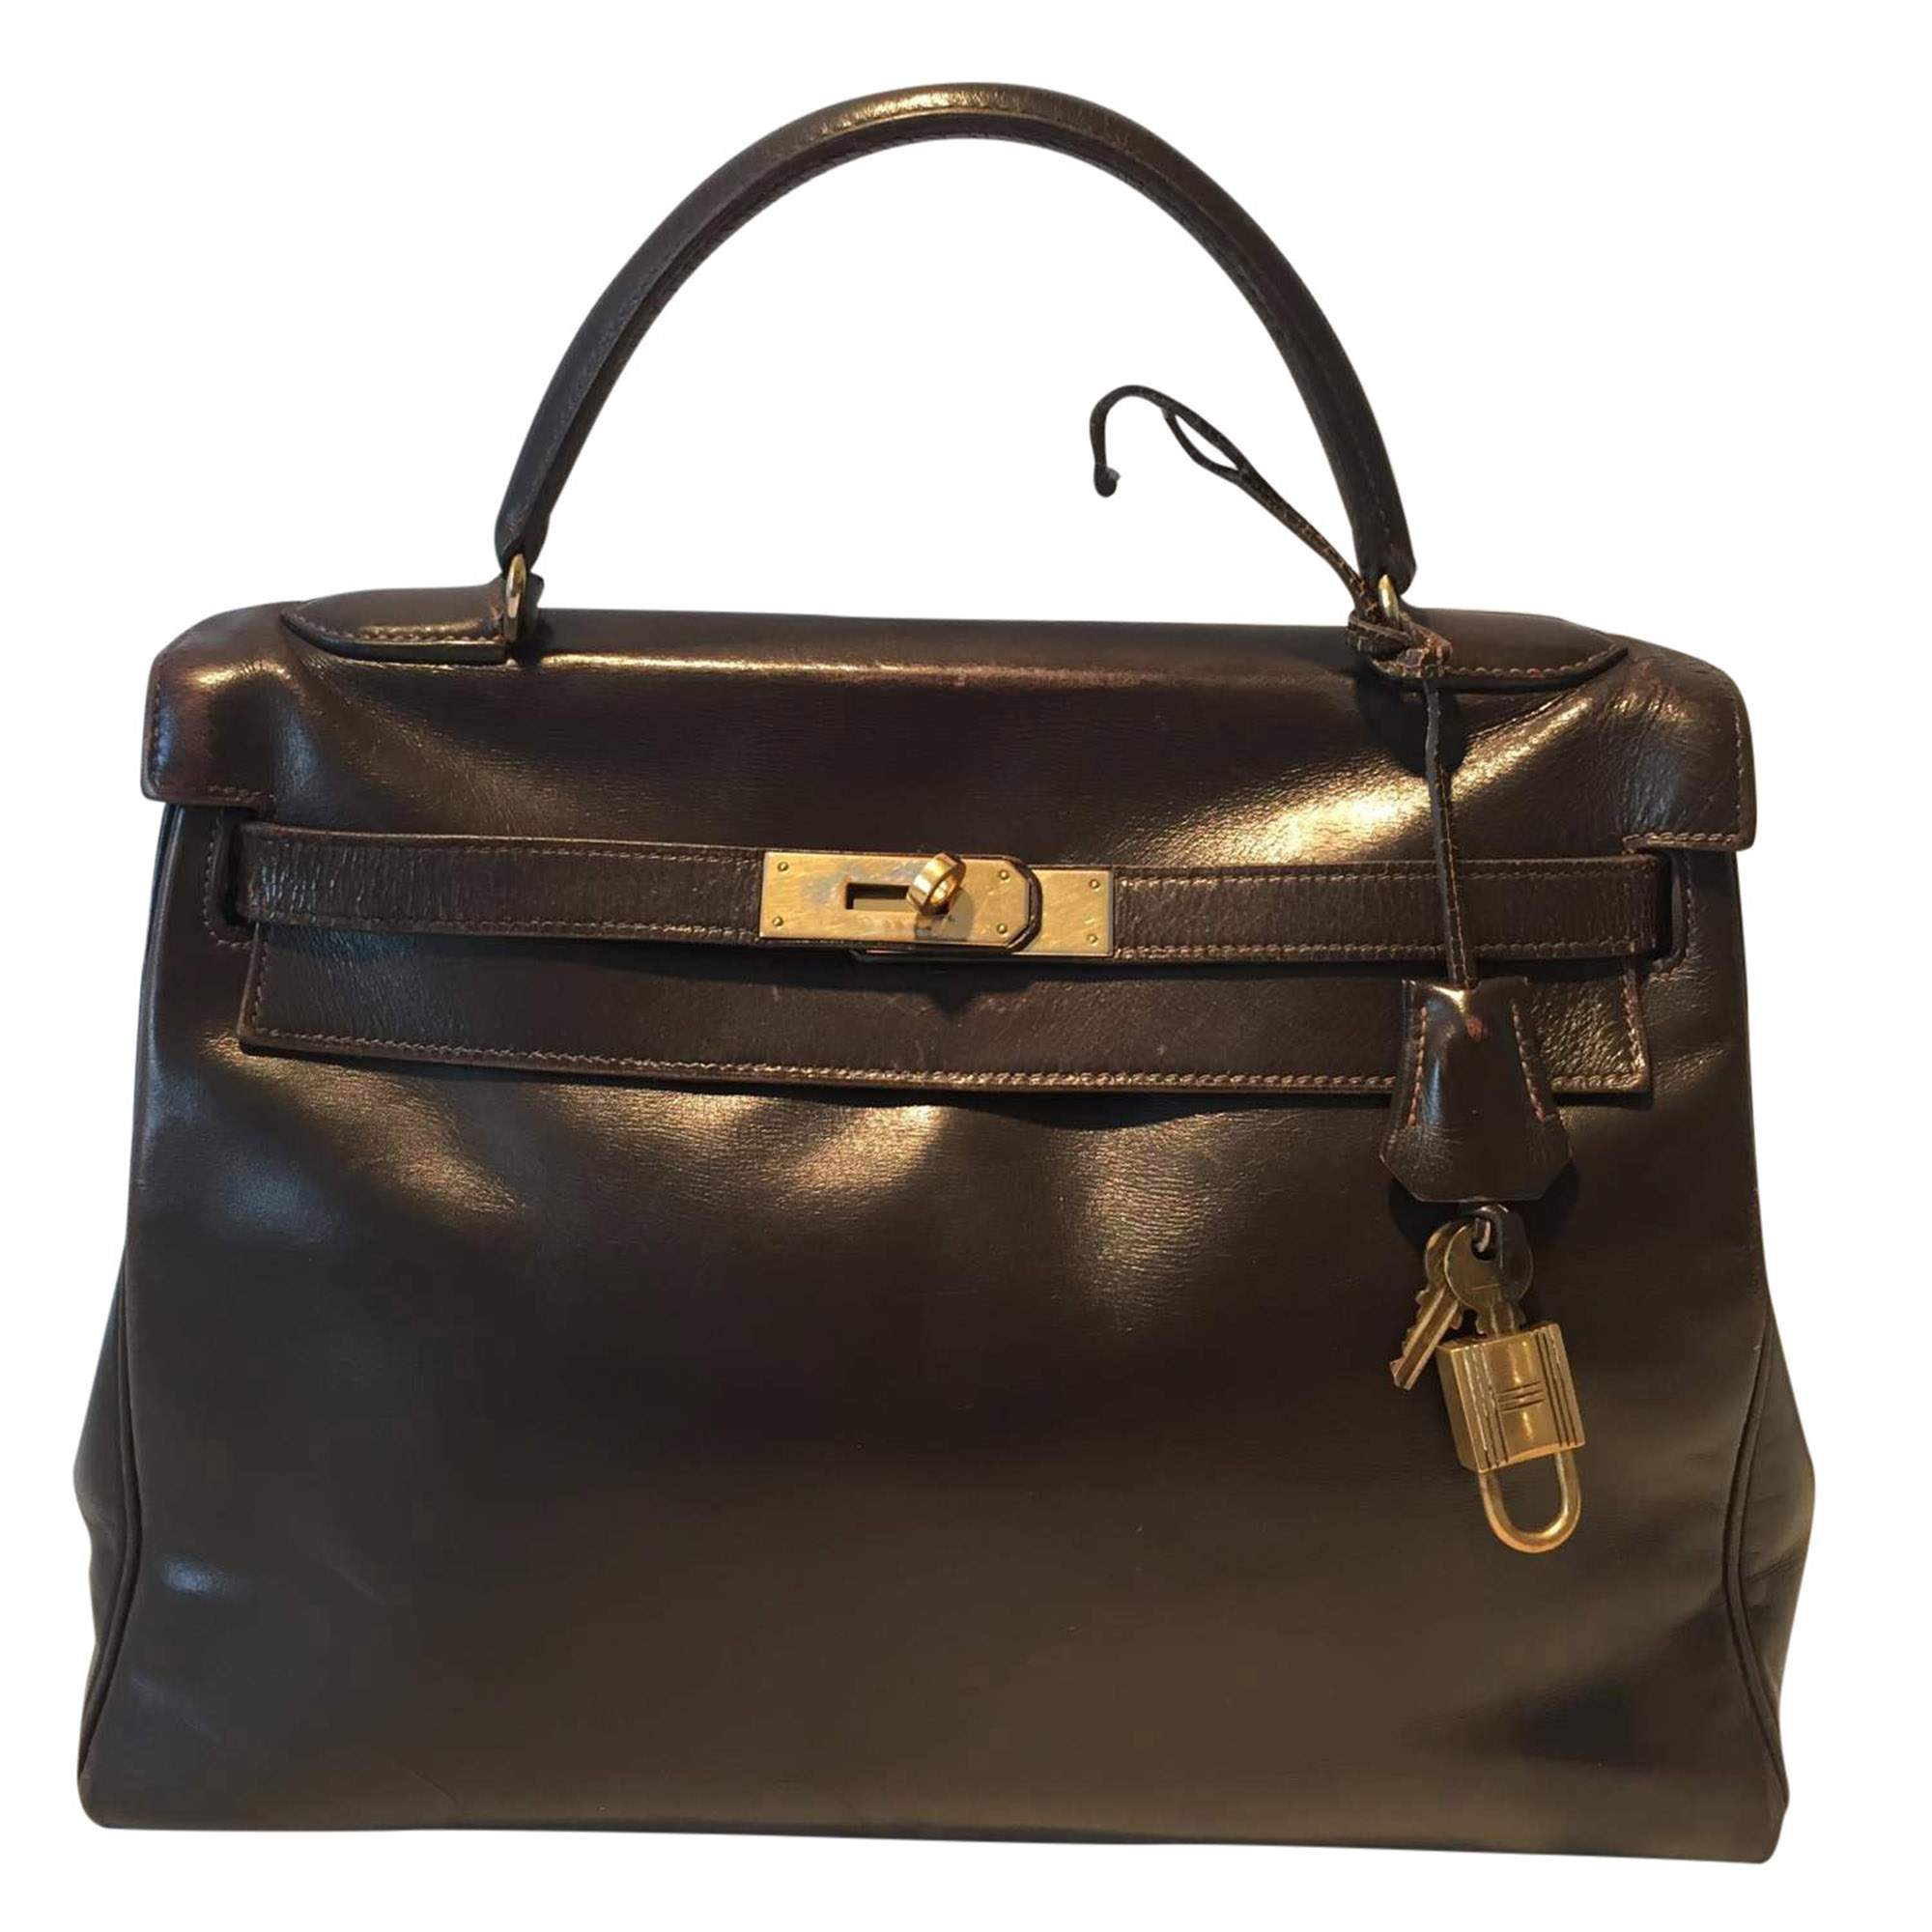 078fa5c4aab6 Hermes Kelly Bag in brown leather vintage 1970 | The Chic Selection